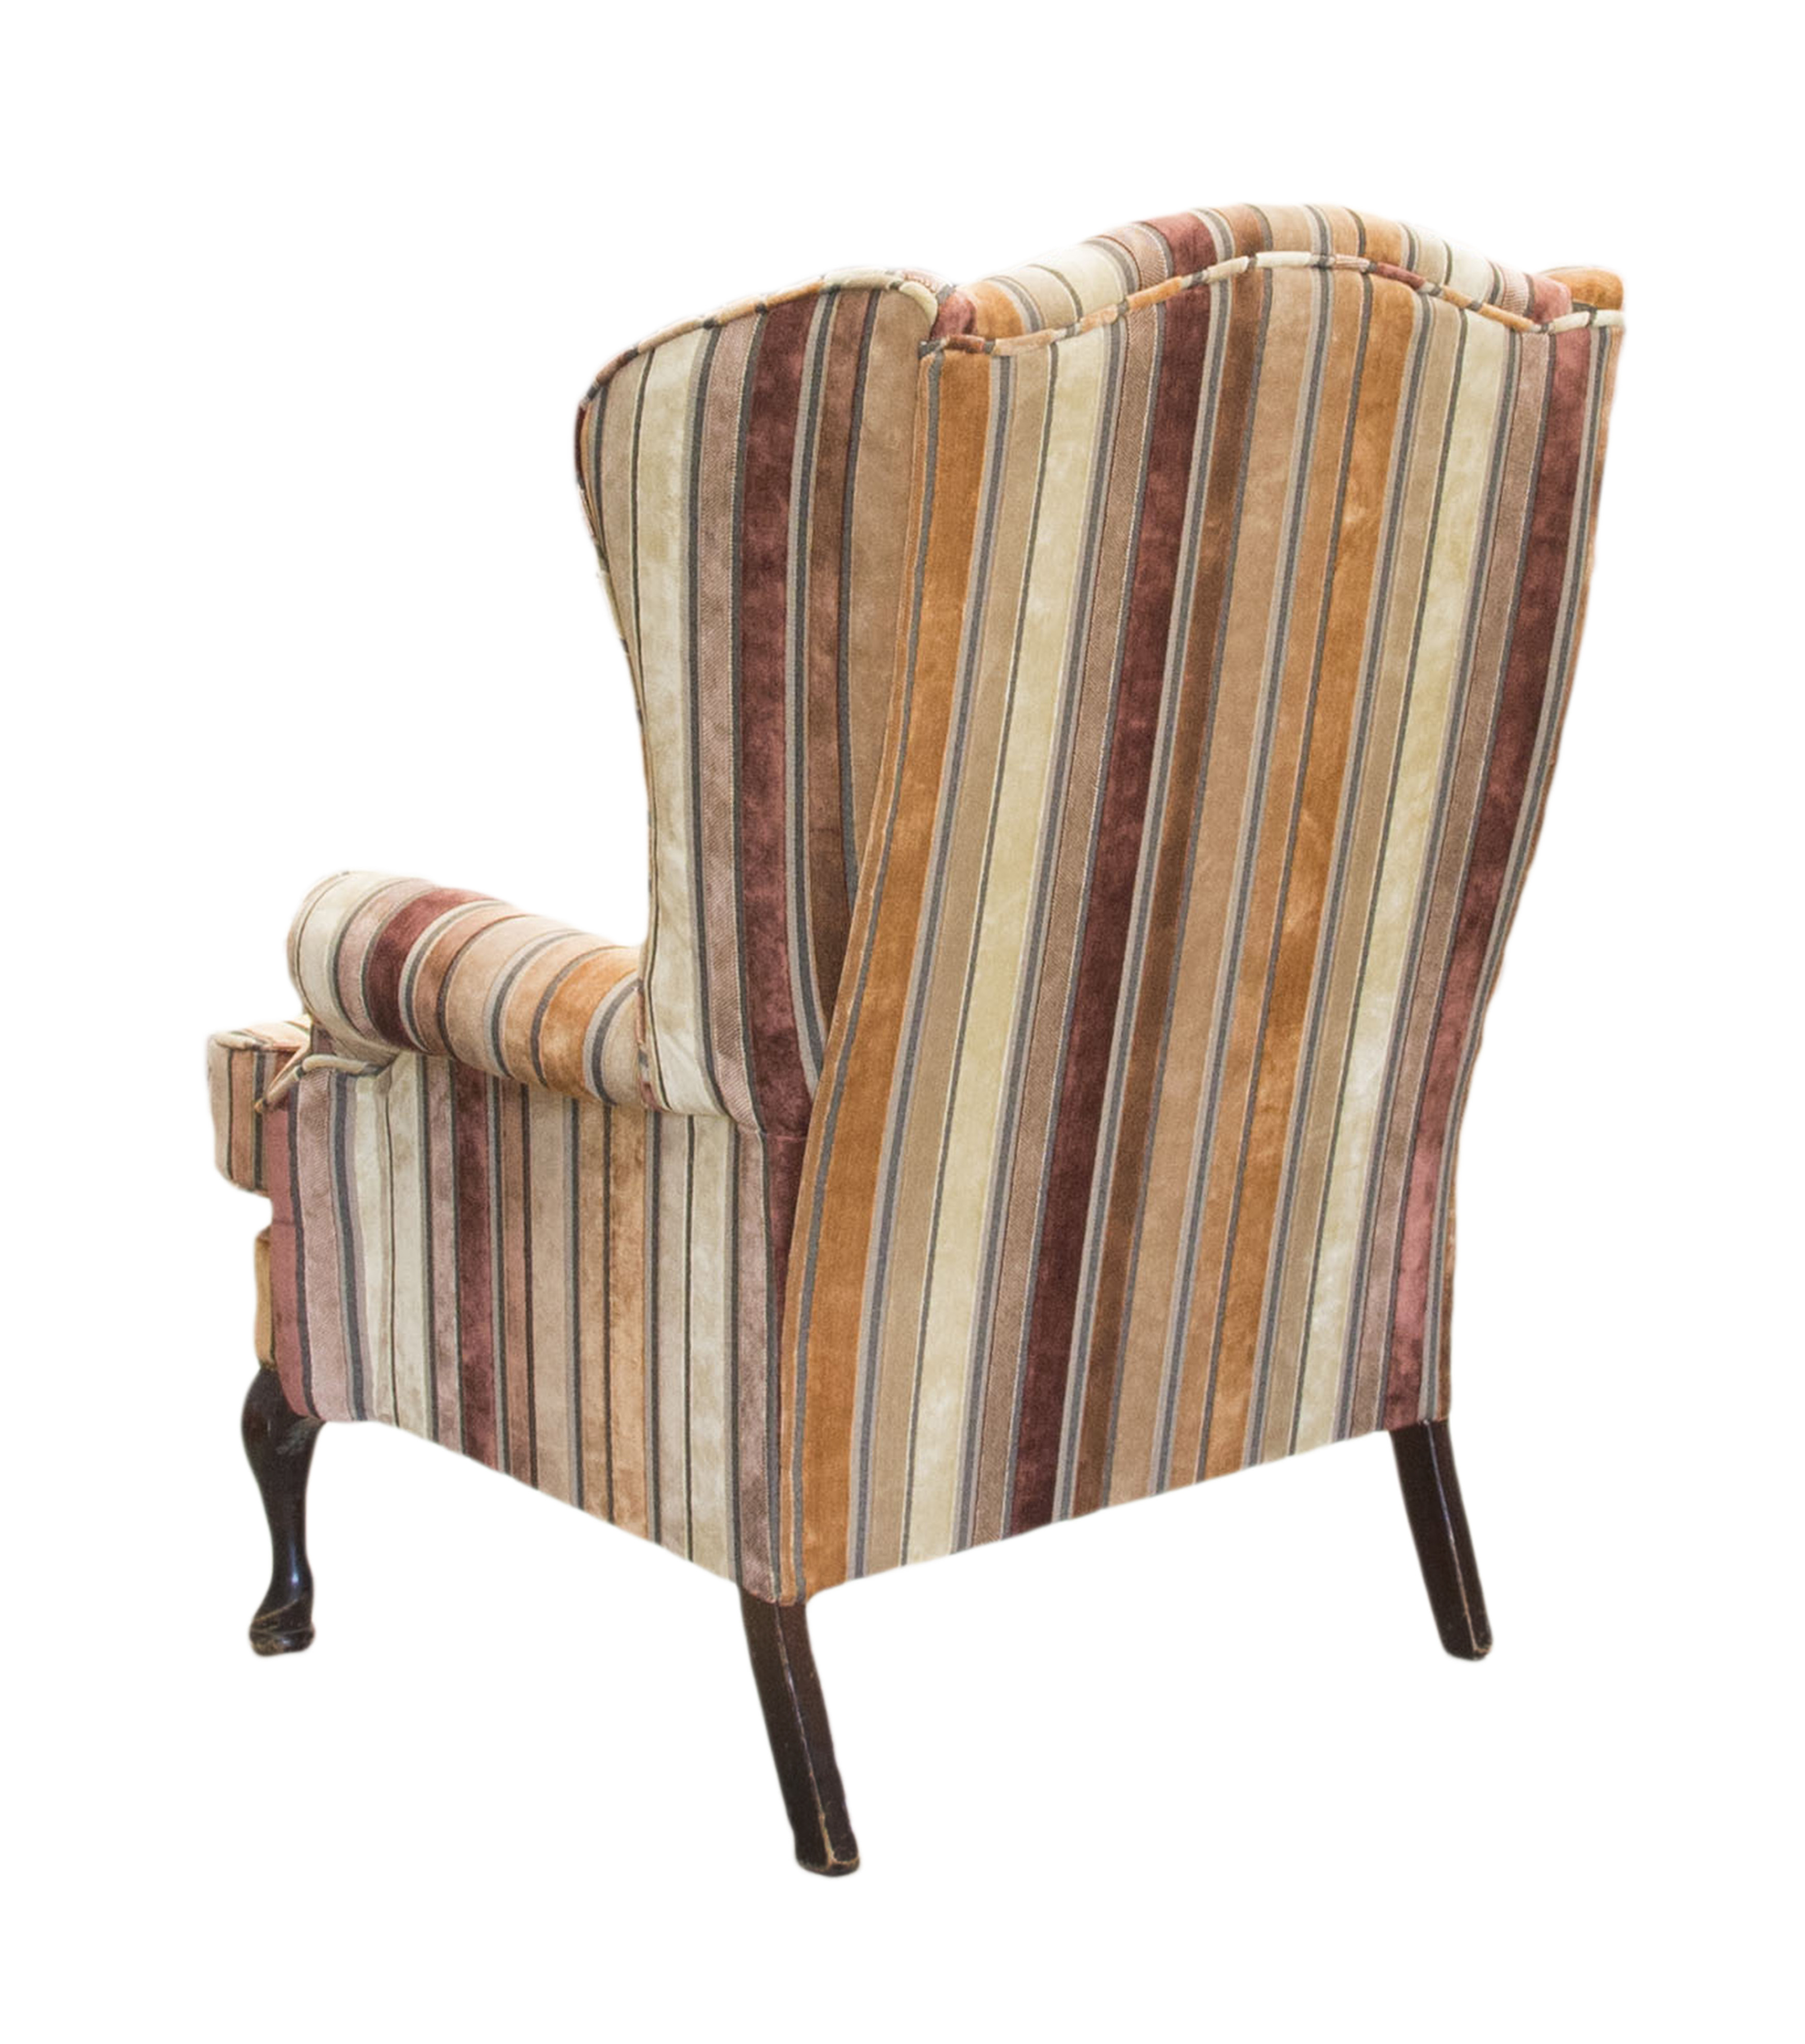 Queen Anne Chair After back